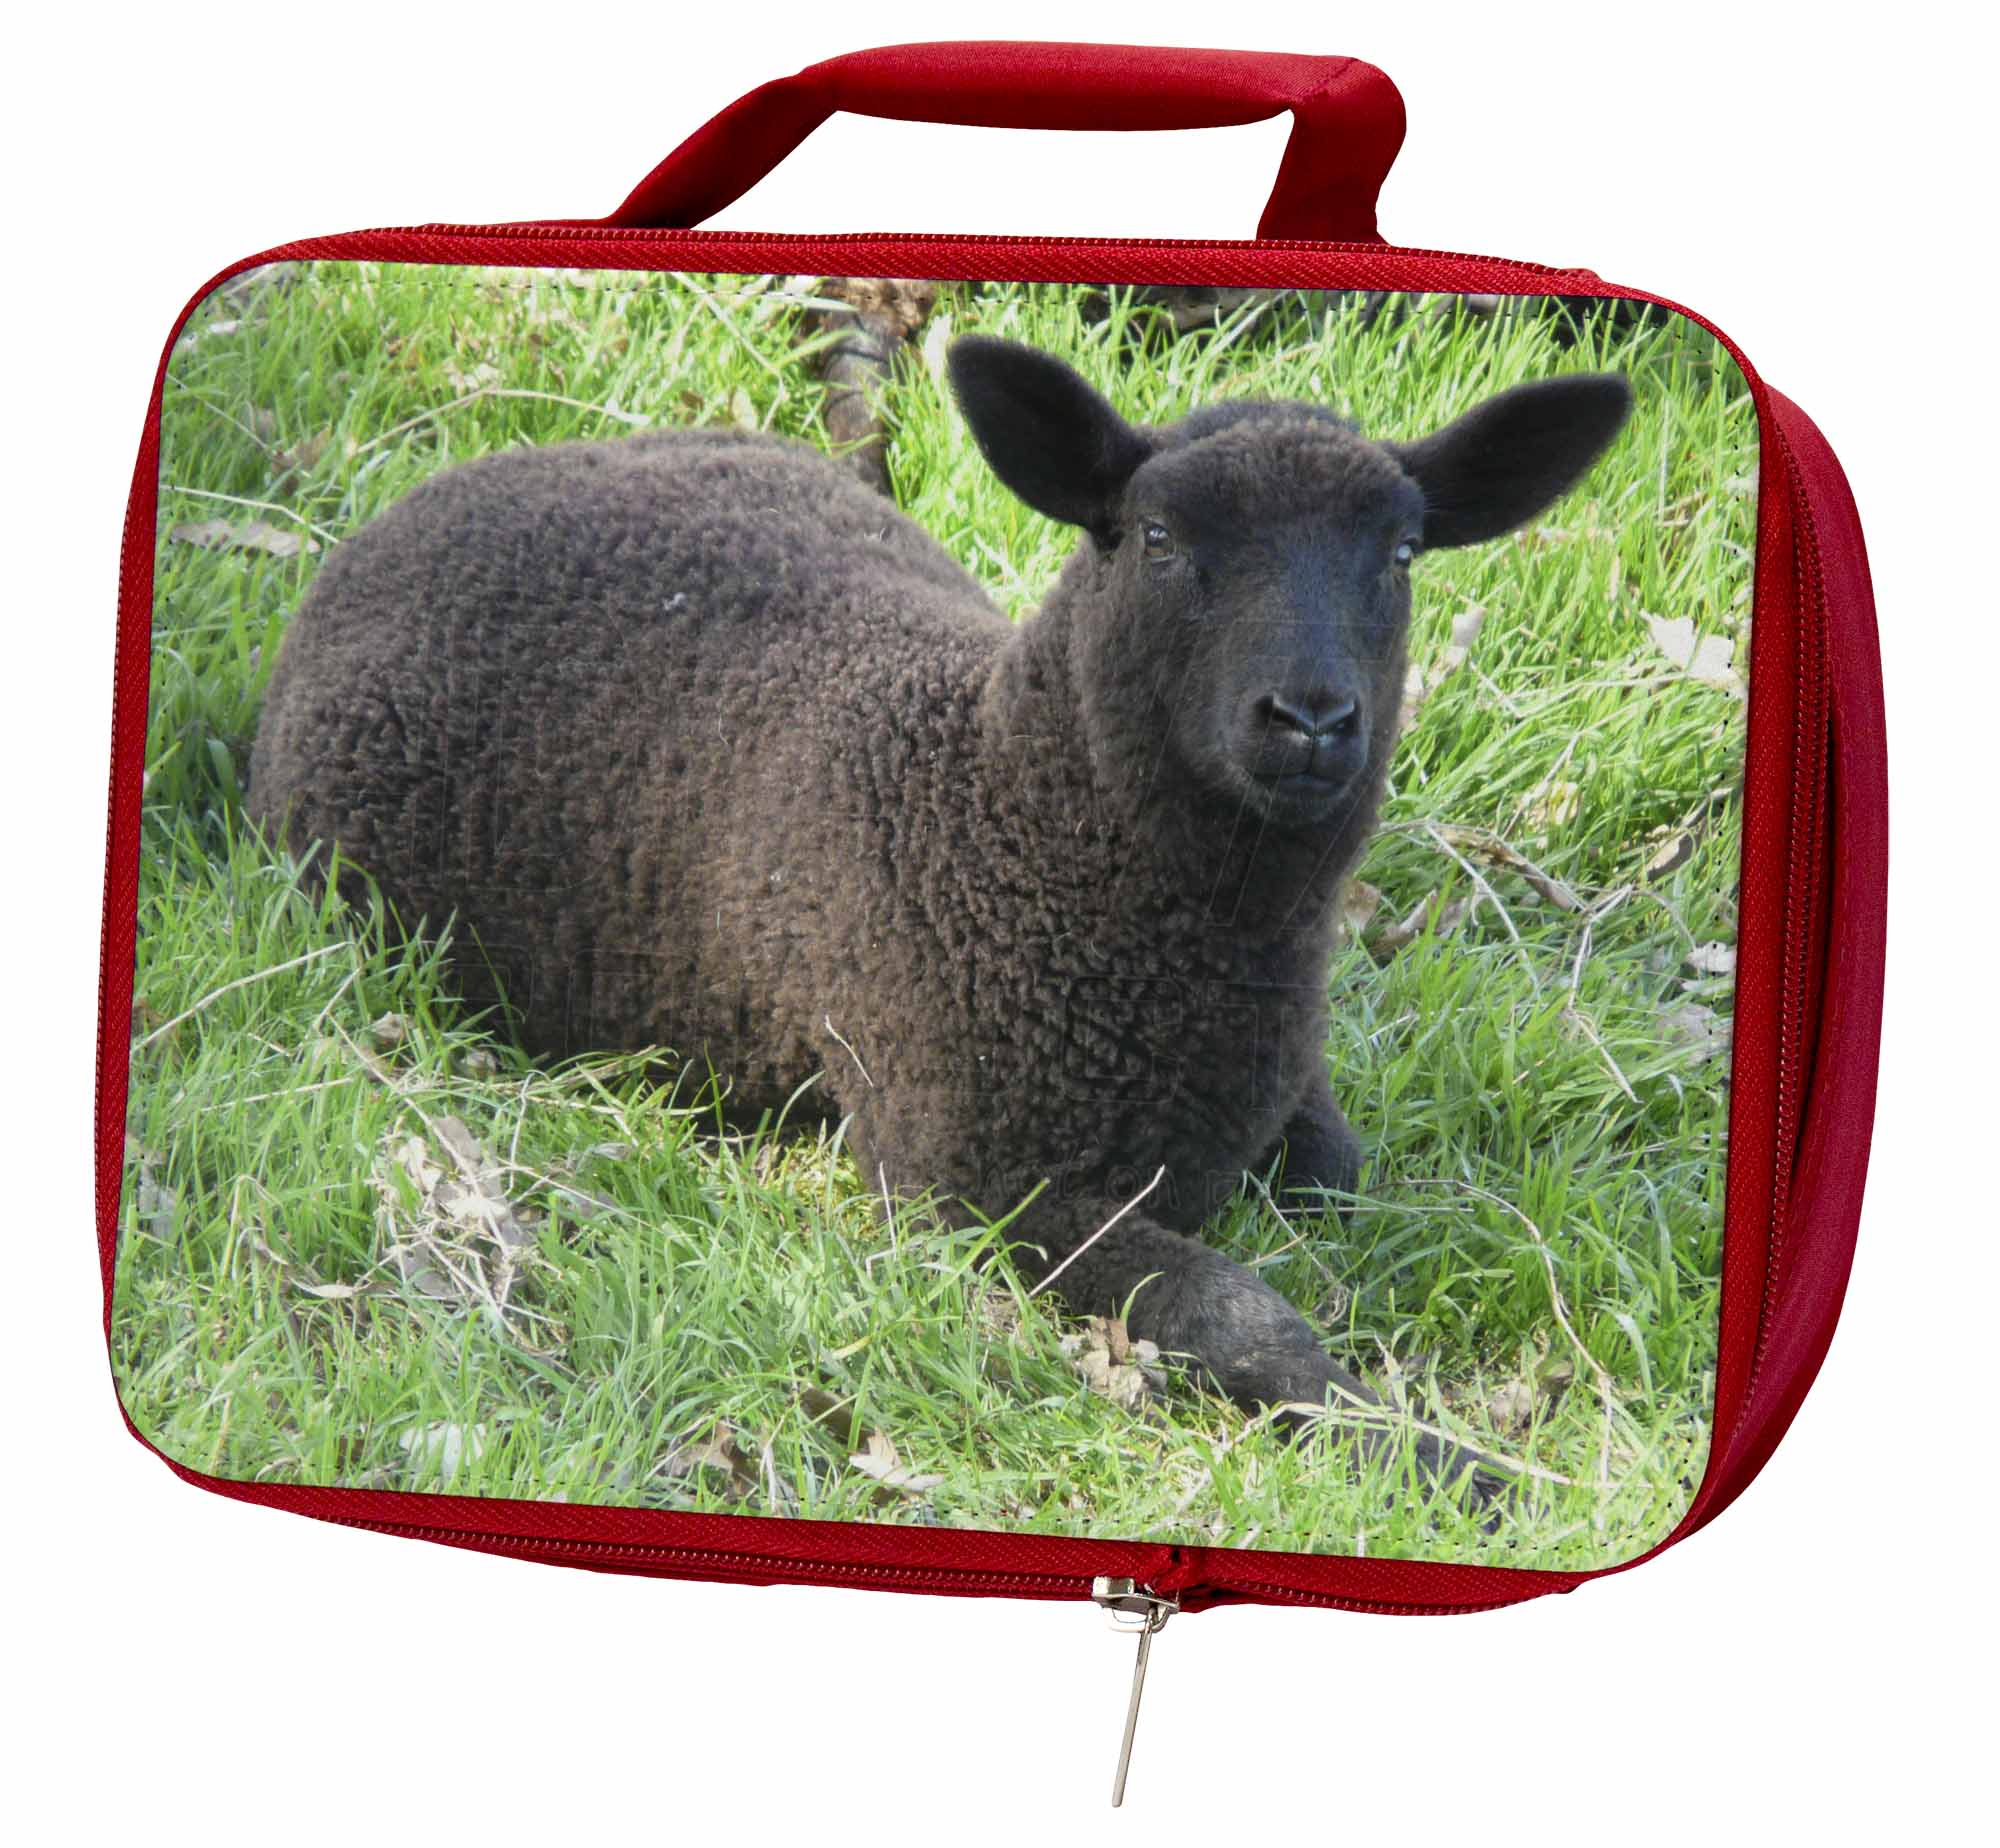 Details about Black Lamb Insulated Red School Lunch Box/Picnic Bag, ASH-8LBR